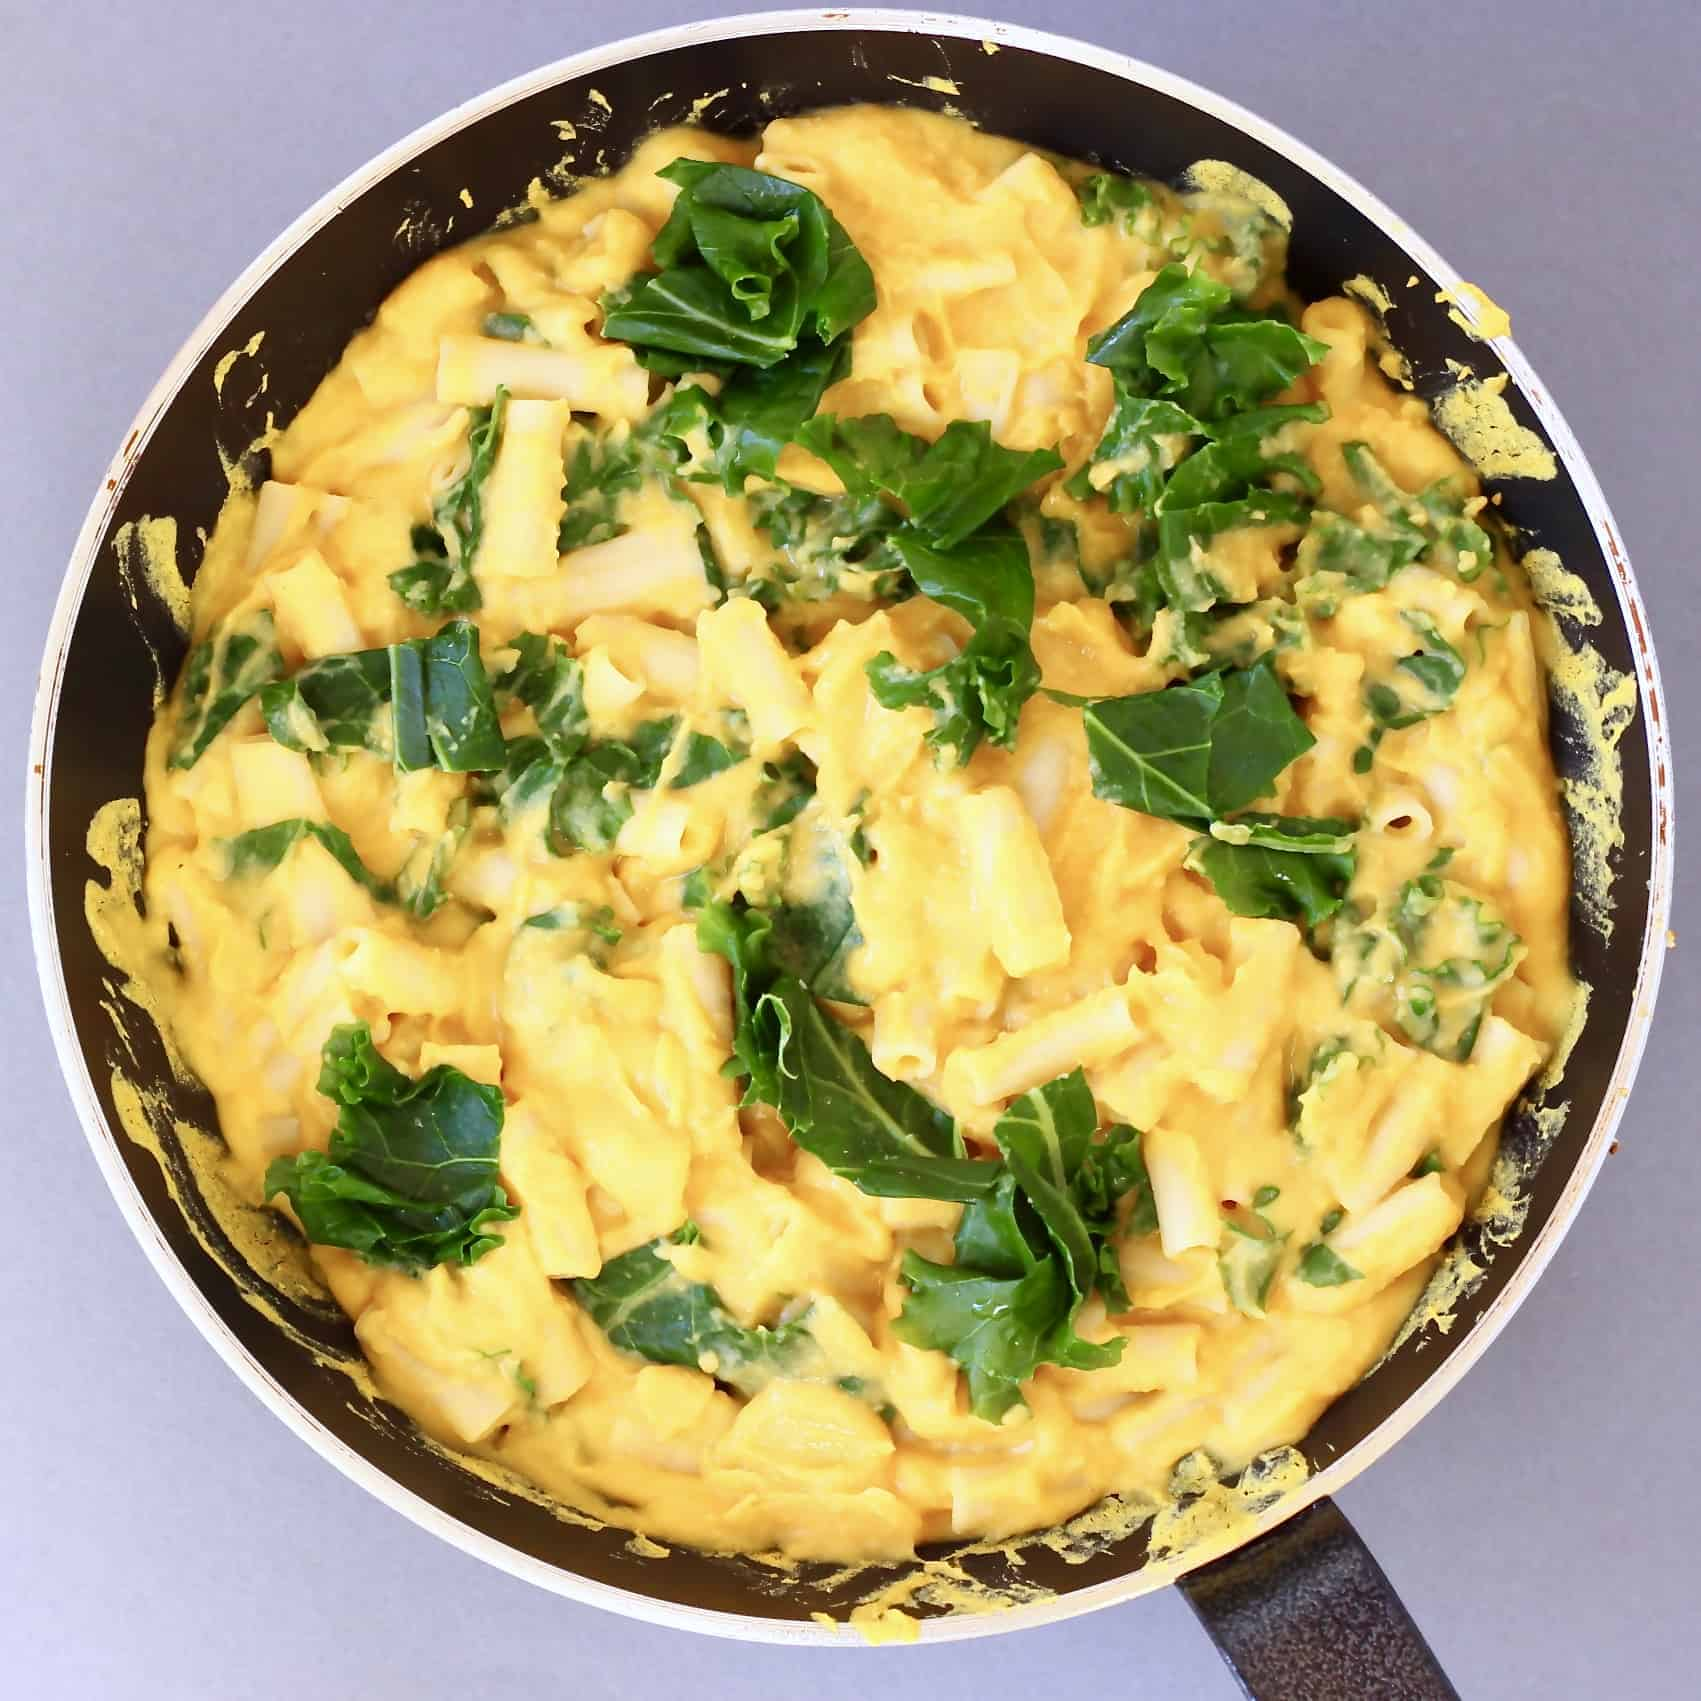 Photo of pasta with orange butternut squash sauce and green kale in a black frying pan against a grey background